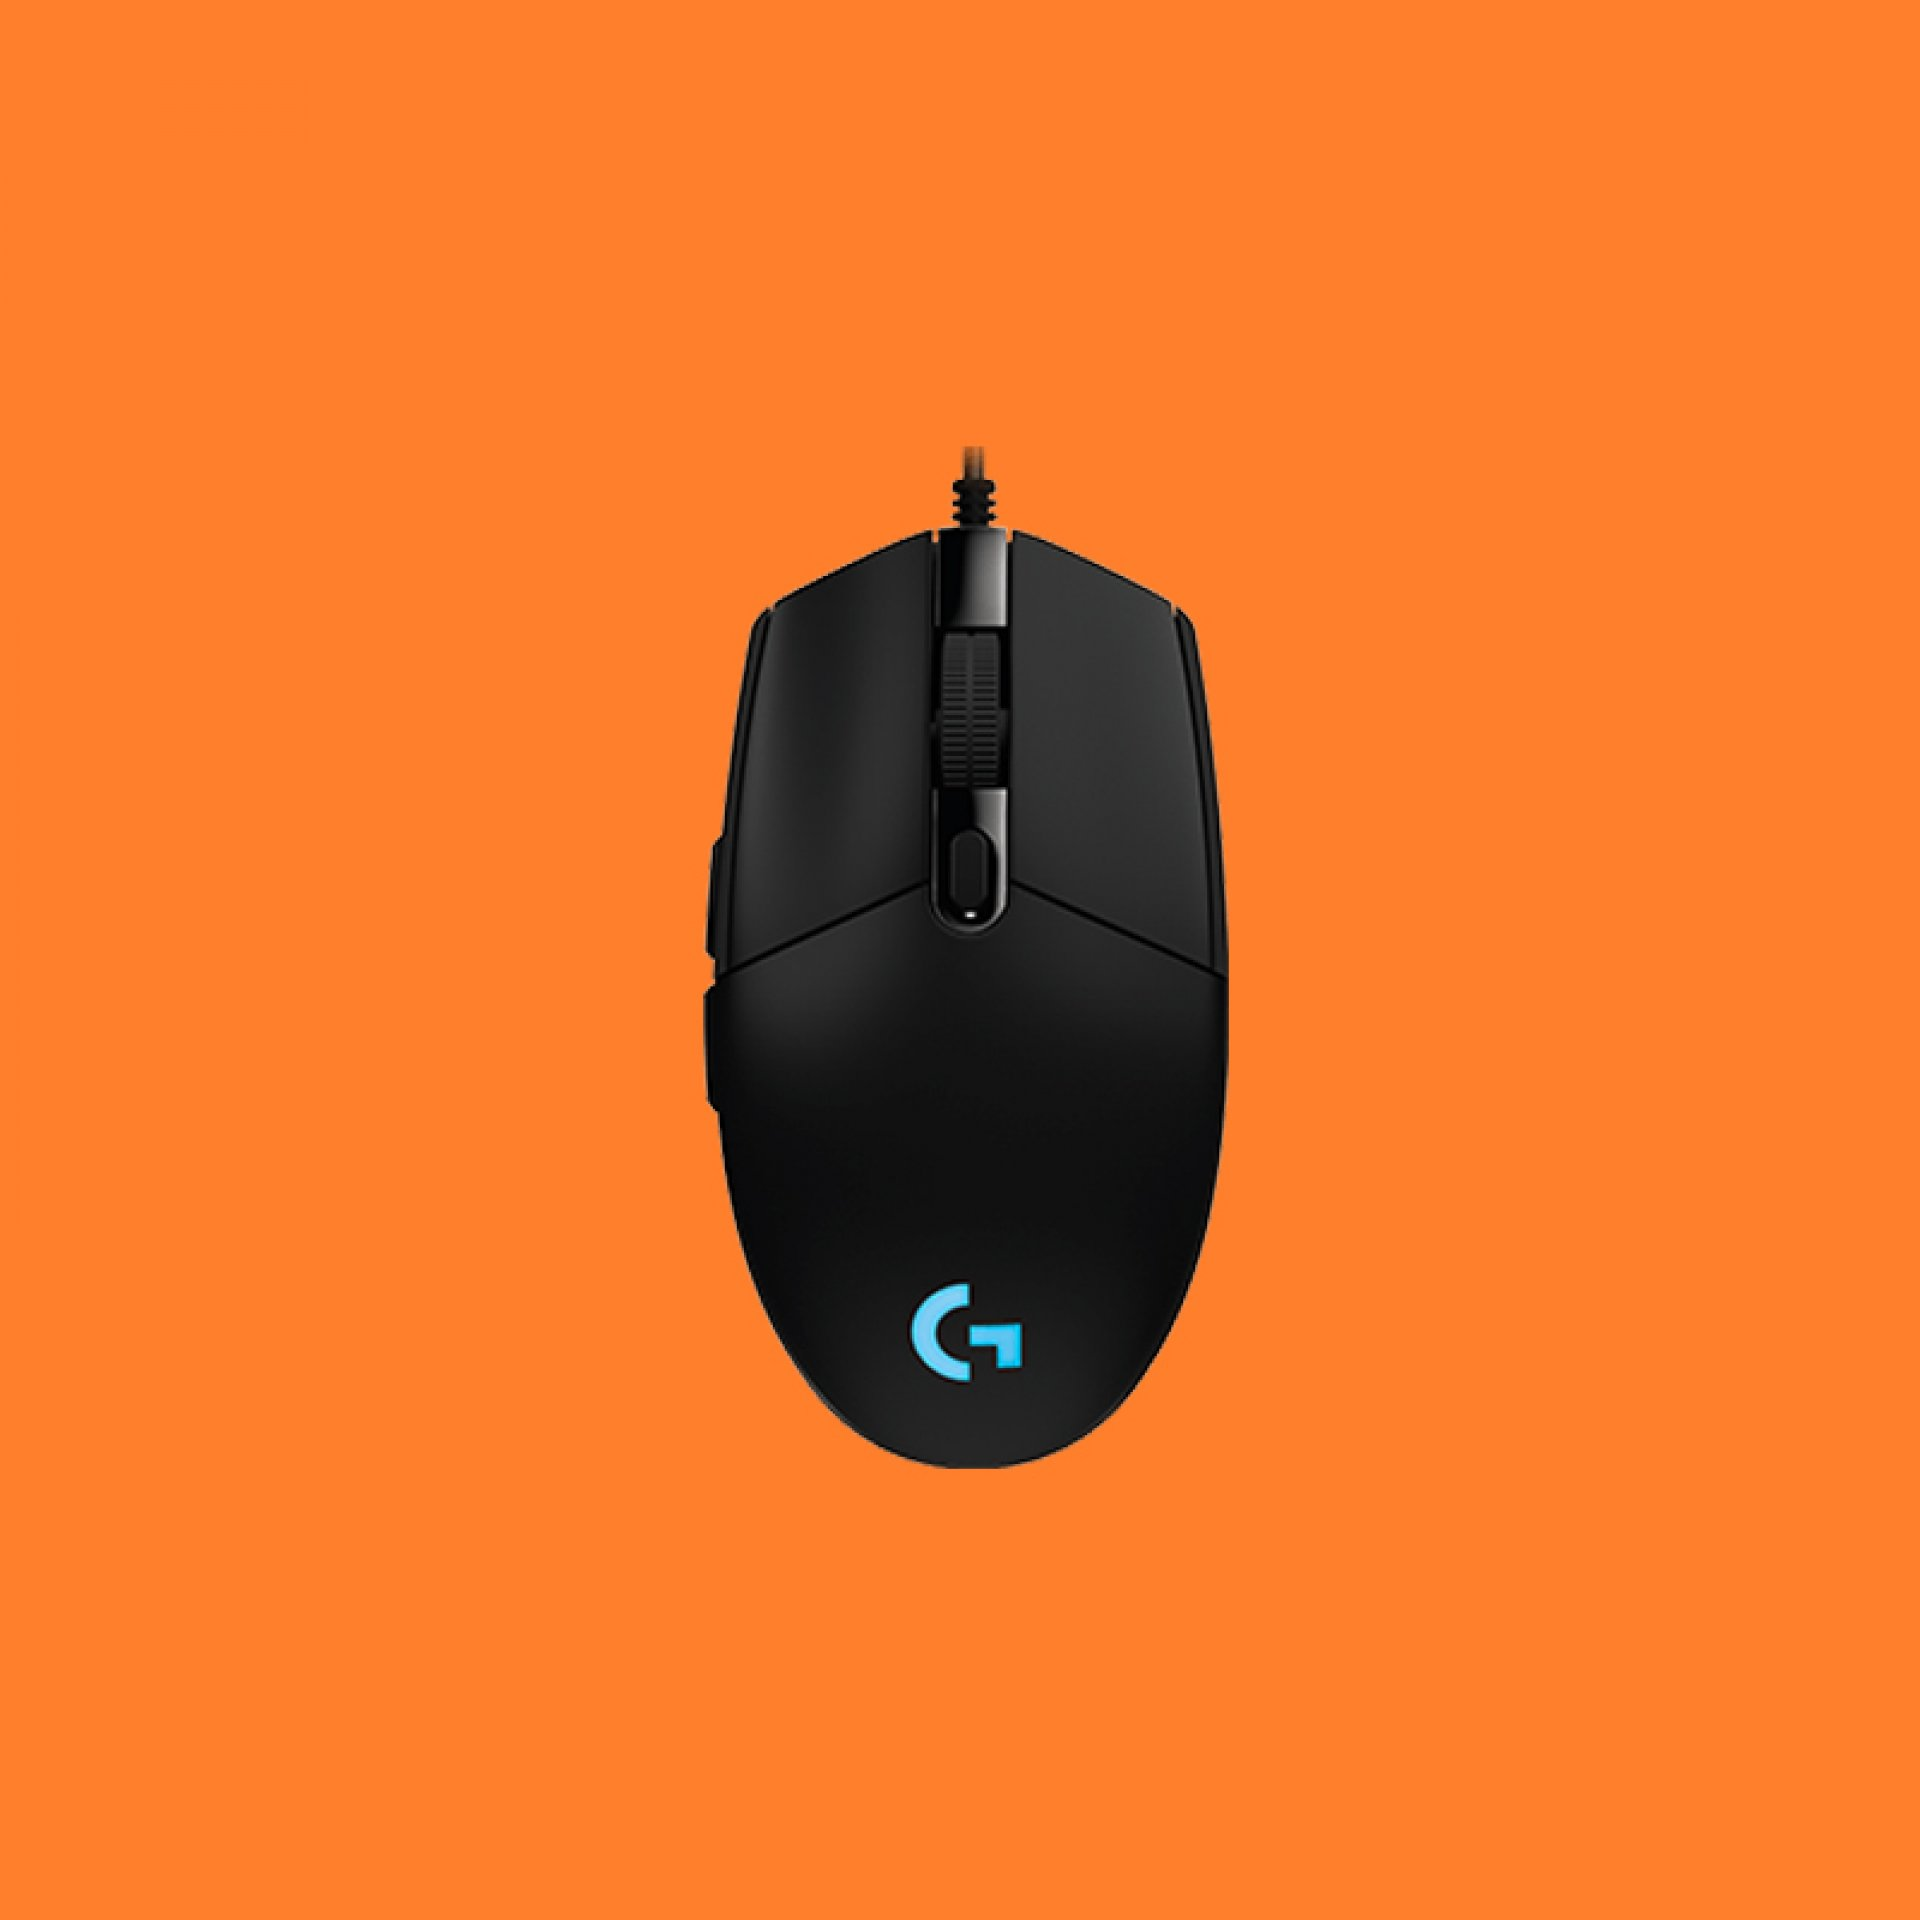 LOGITECH G102 PRODIGY Wired Gaming Mouse - (8000DPI, Optical Sensor, RGB Lighting, 1000Hz Polling Rate)